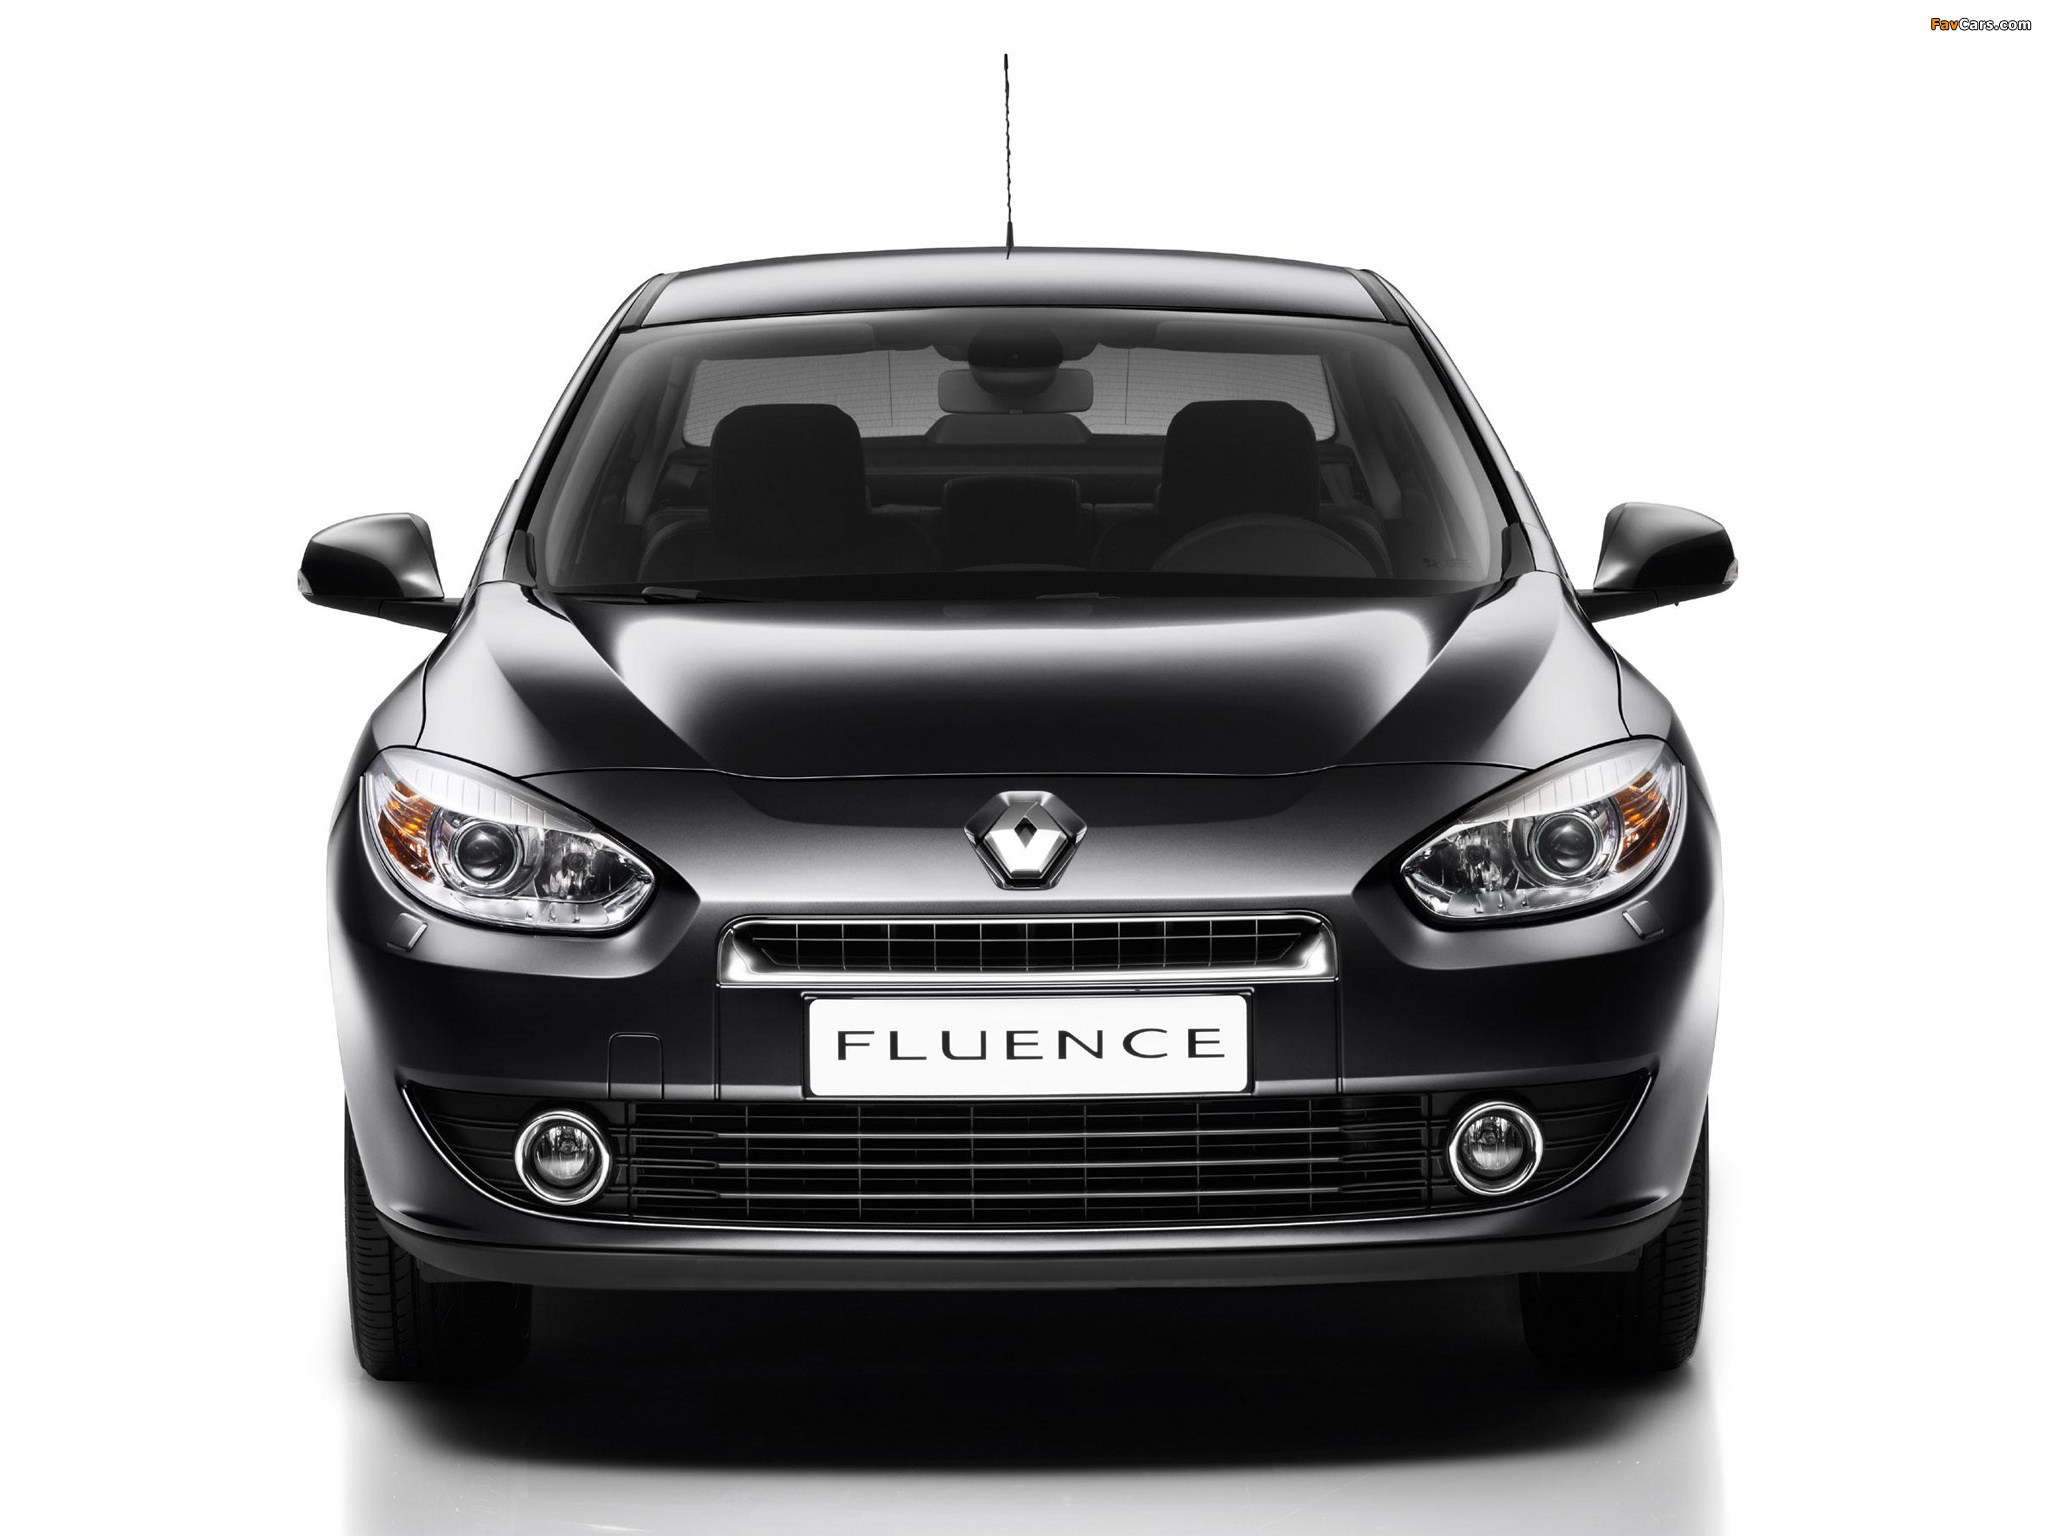 Renault Fluence 2009 pictures (2048 x 1536)